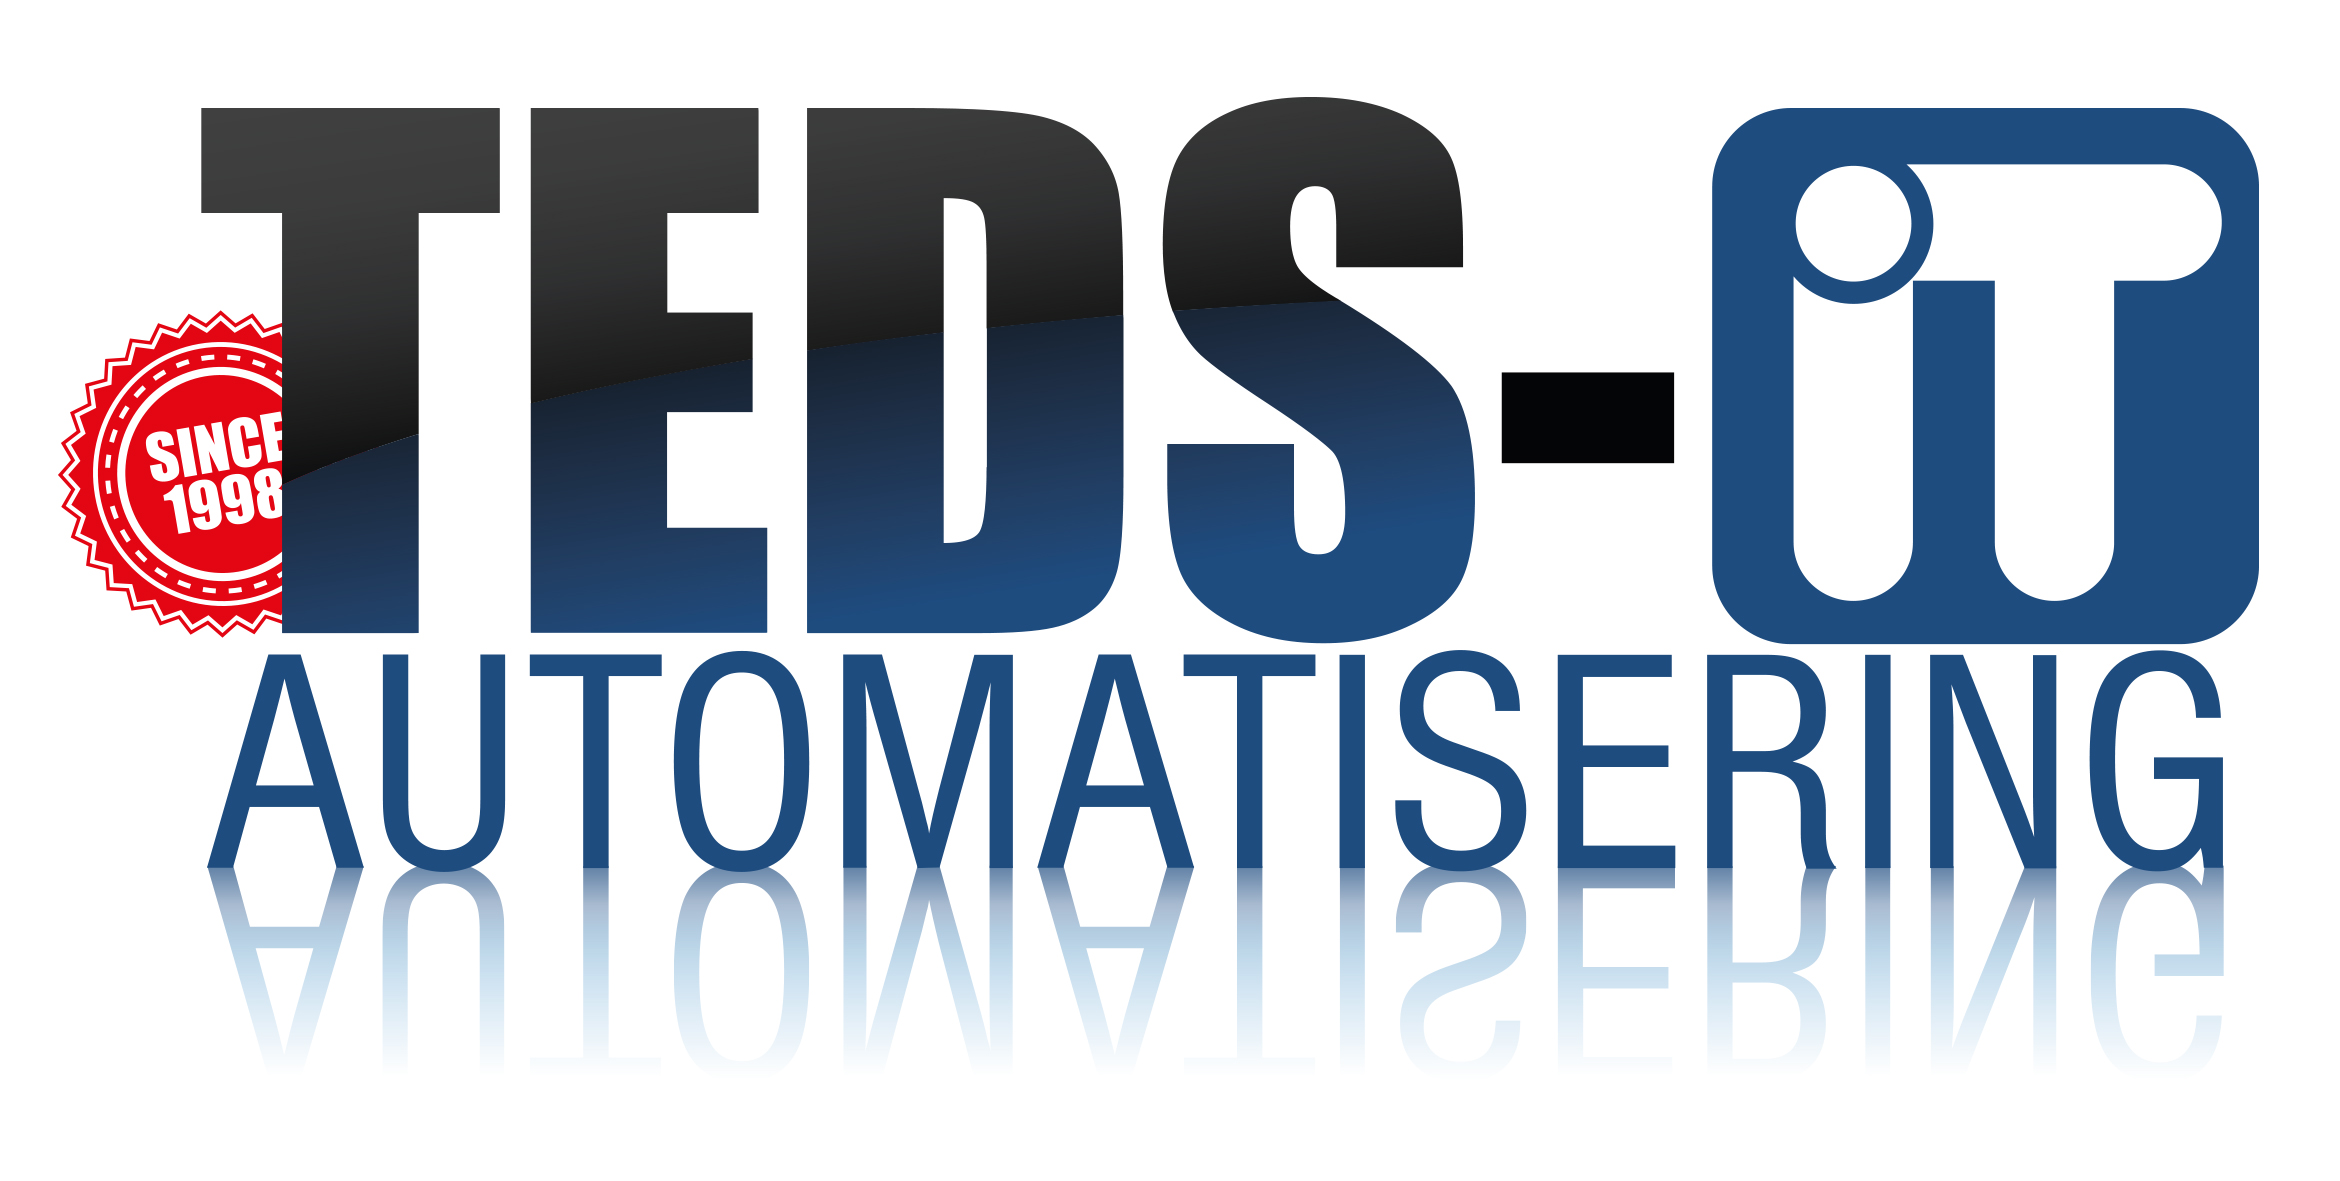 TEDS-IT Automatisering